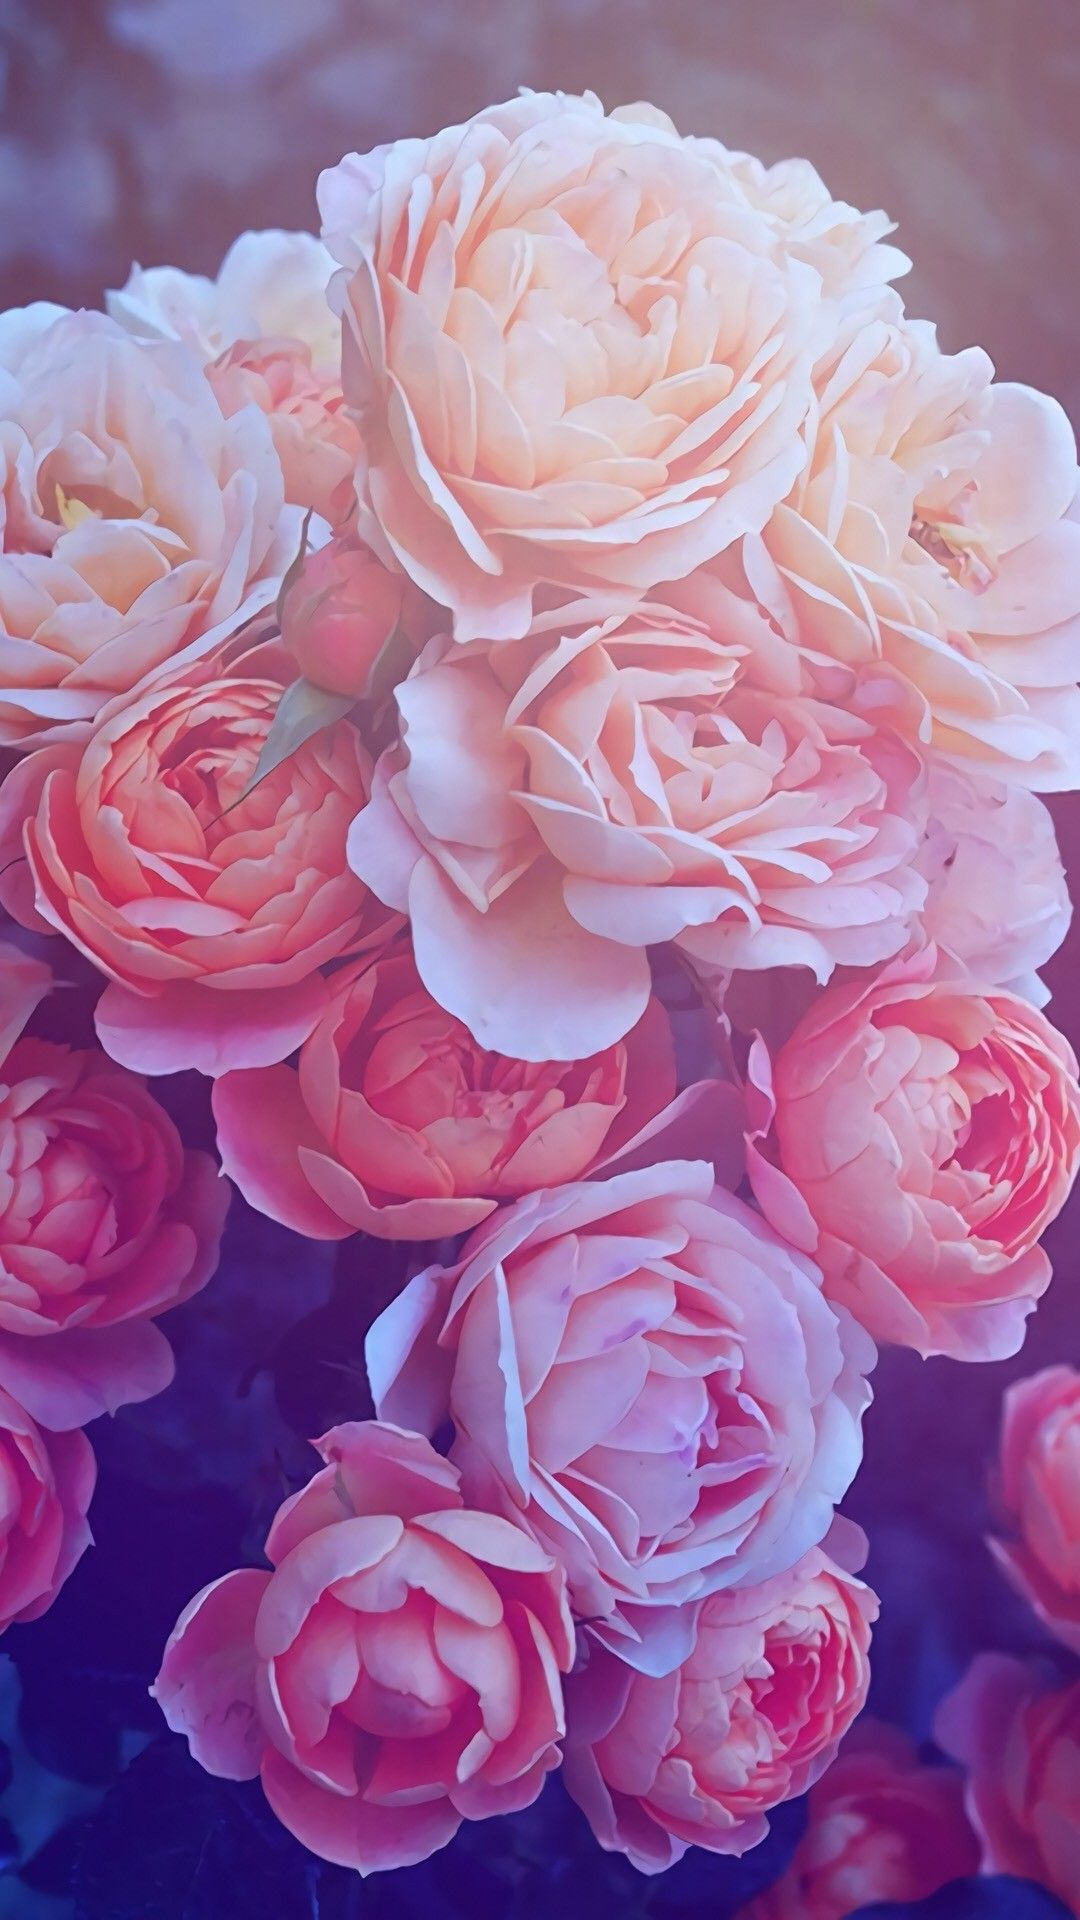 Pink Rose Gold Wallpaper Android Download In 2020 Rose Gold Wallpaper Wallpaper Iphone Roses Flower Wallpaper